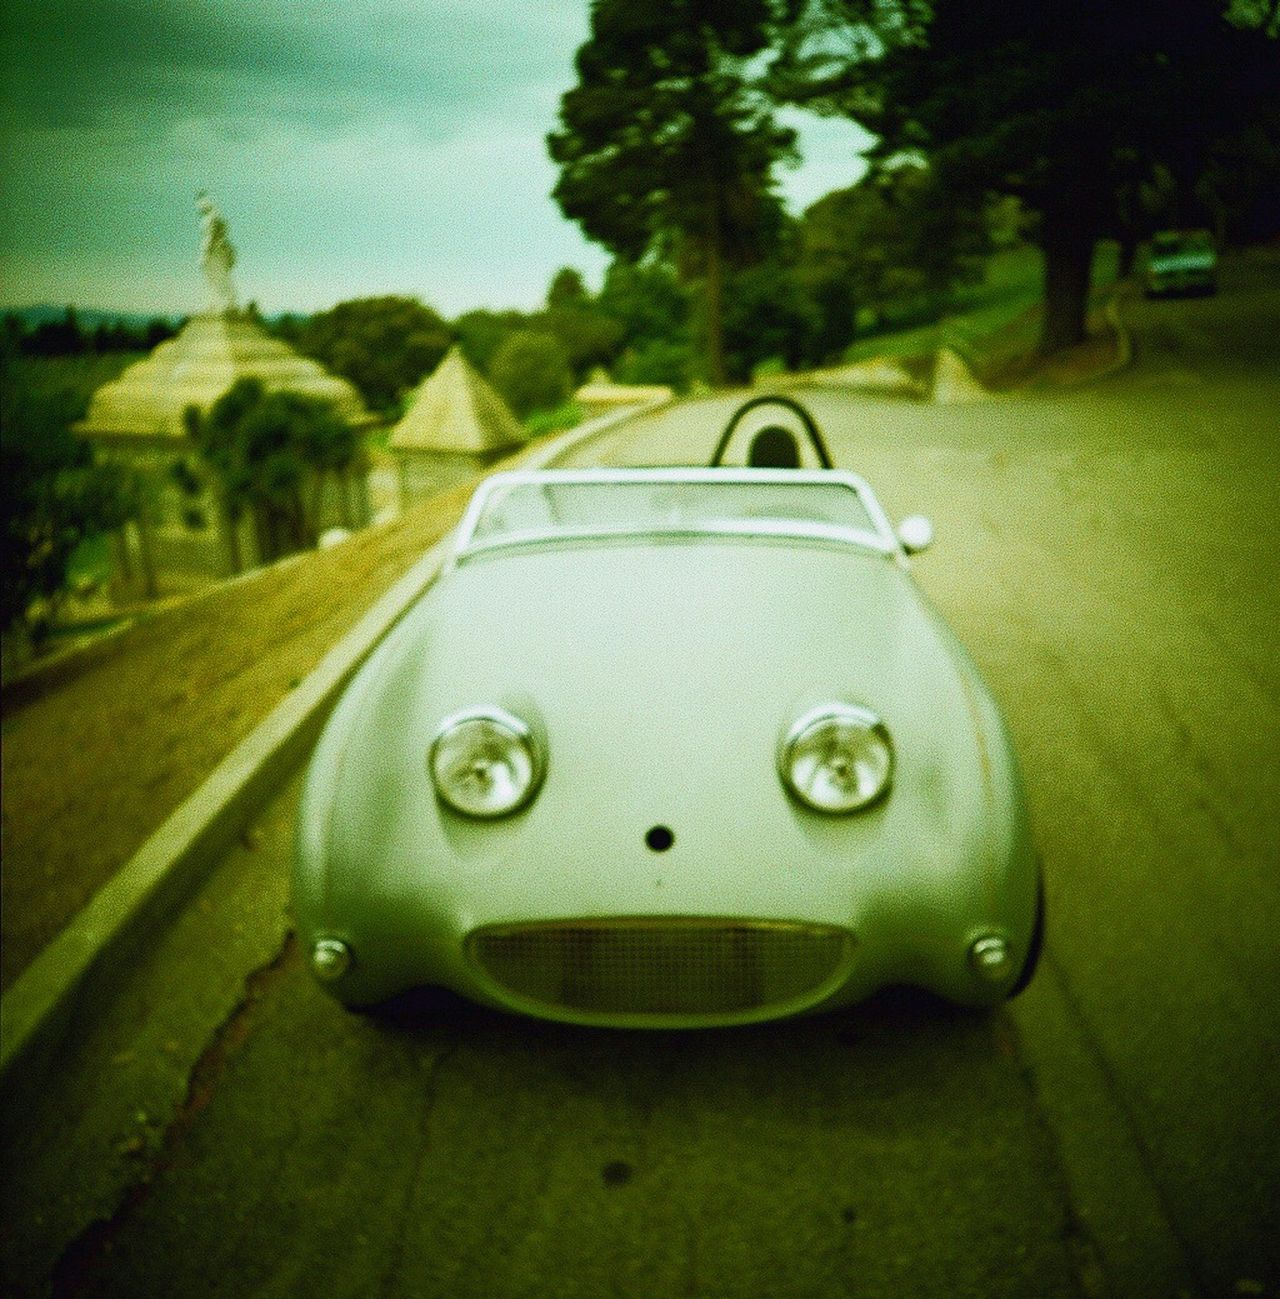 Classic Car Focus On Foreground Outdoors Film Koduckgirl Film Photography Car Convertible